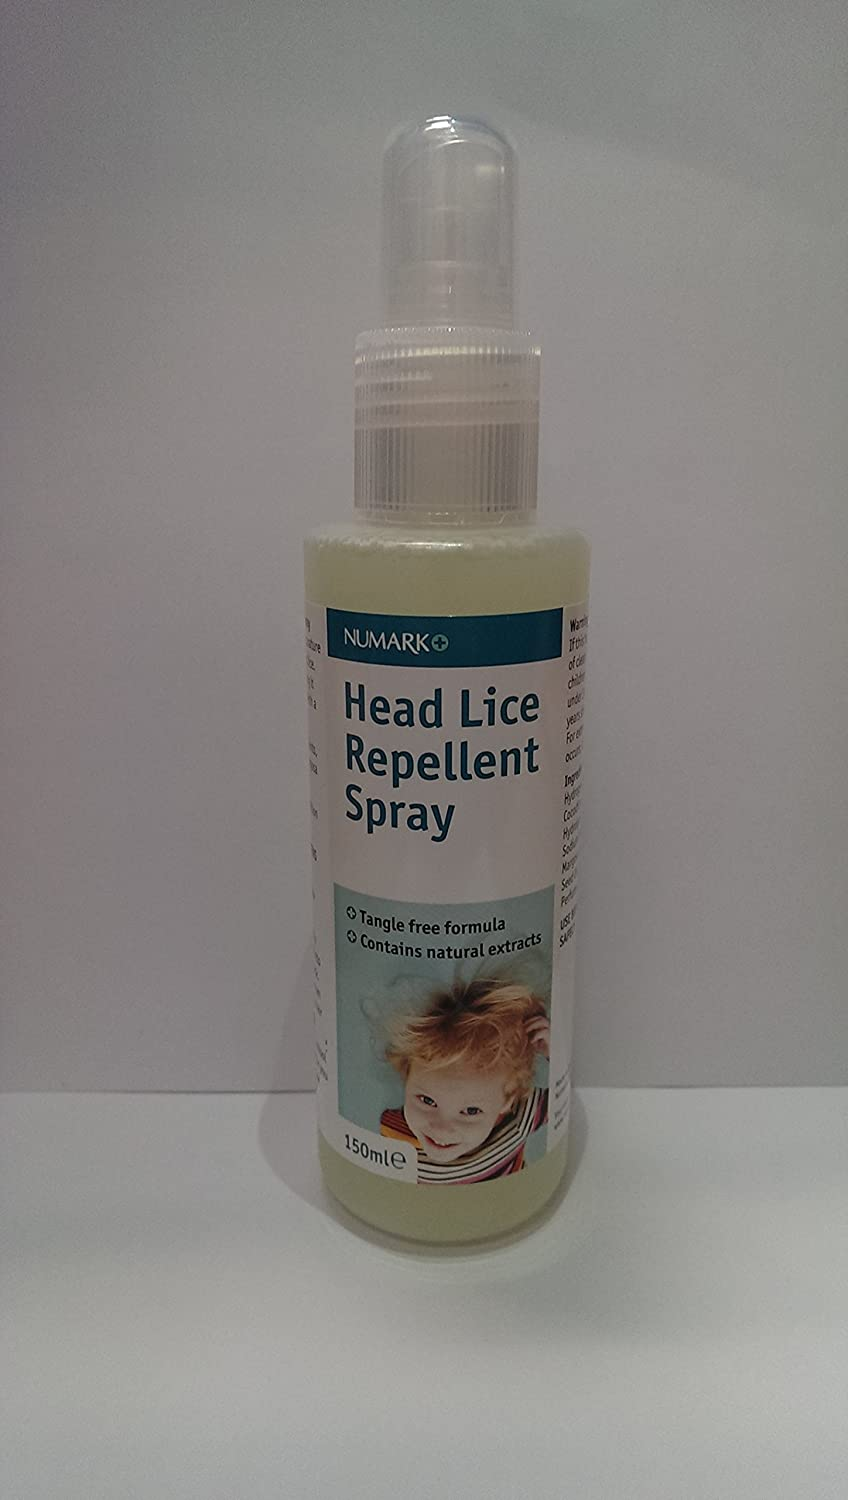 NUMARK HEADLICE REPELLENT SPRAY